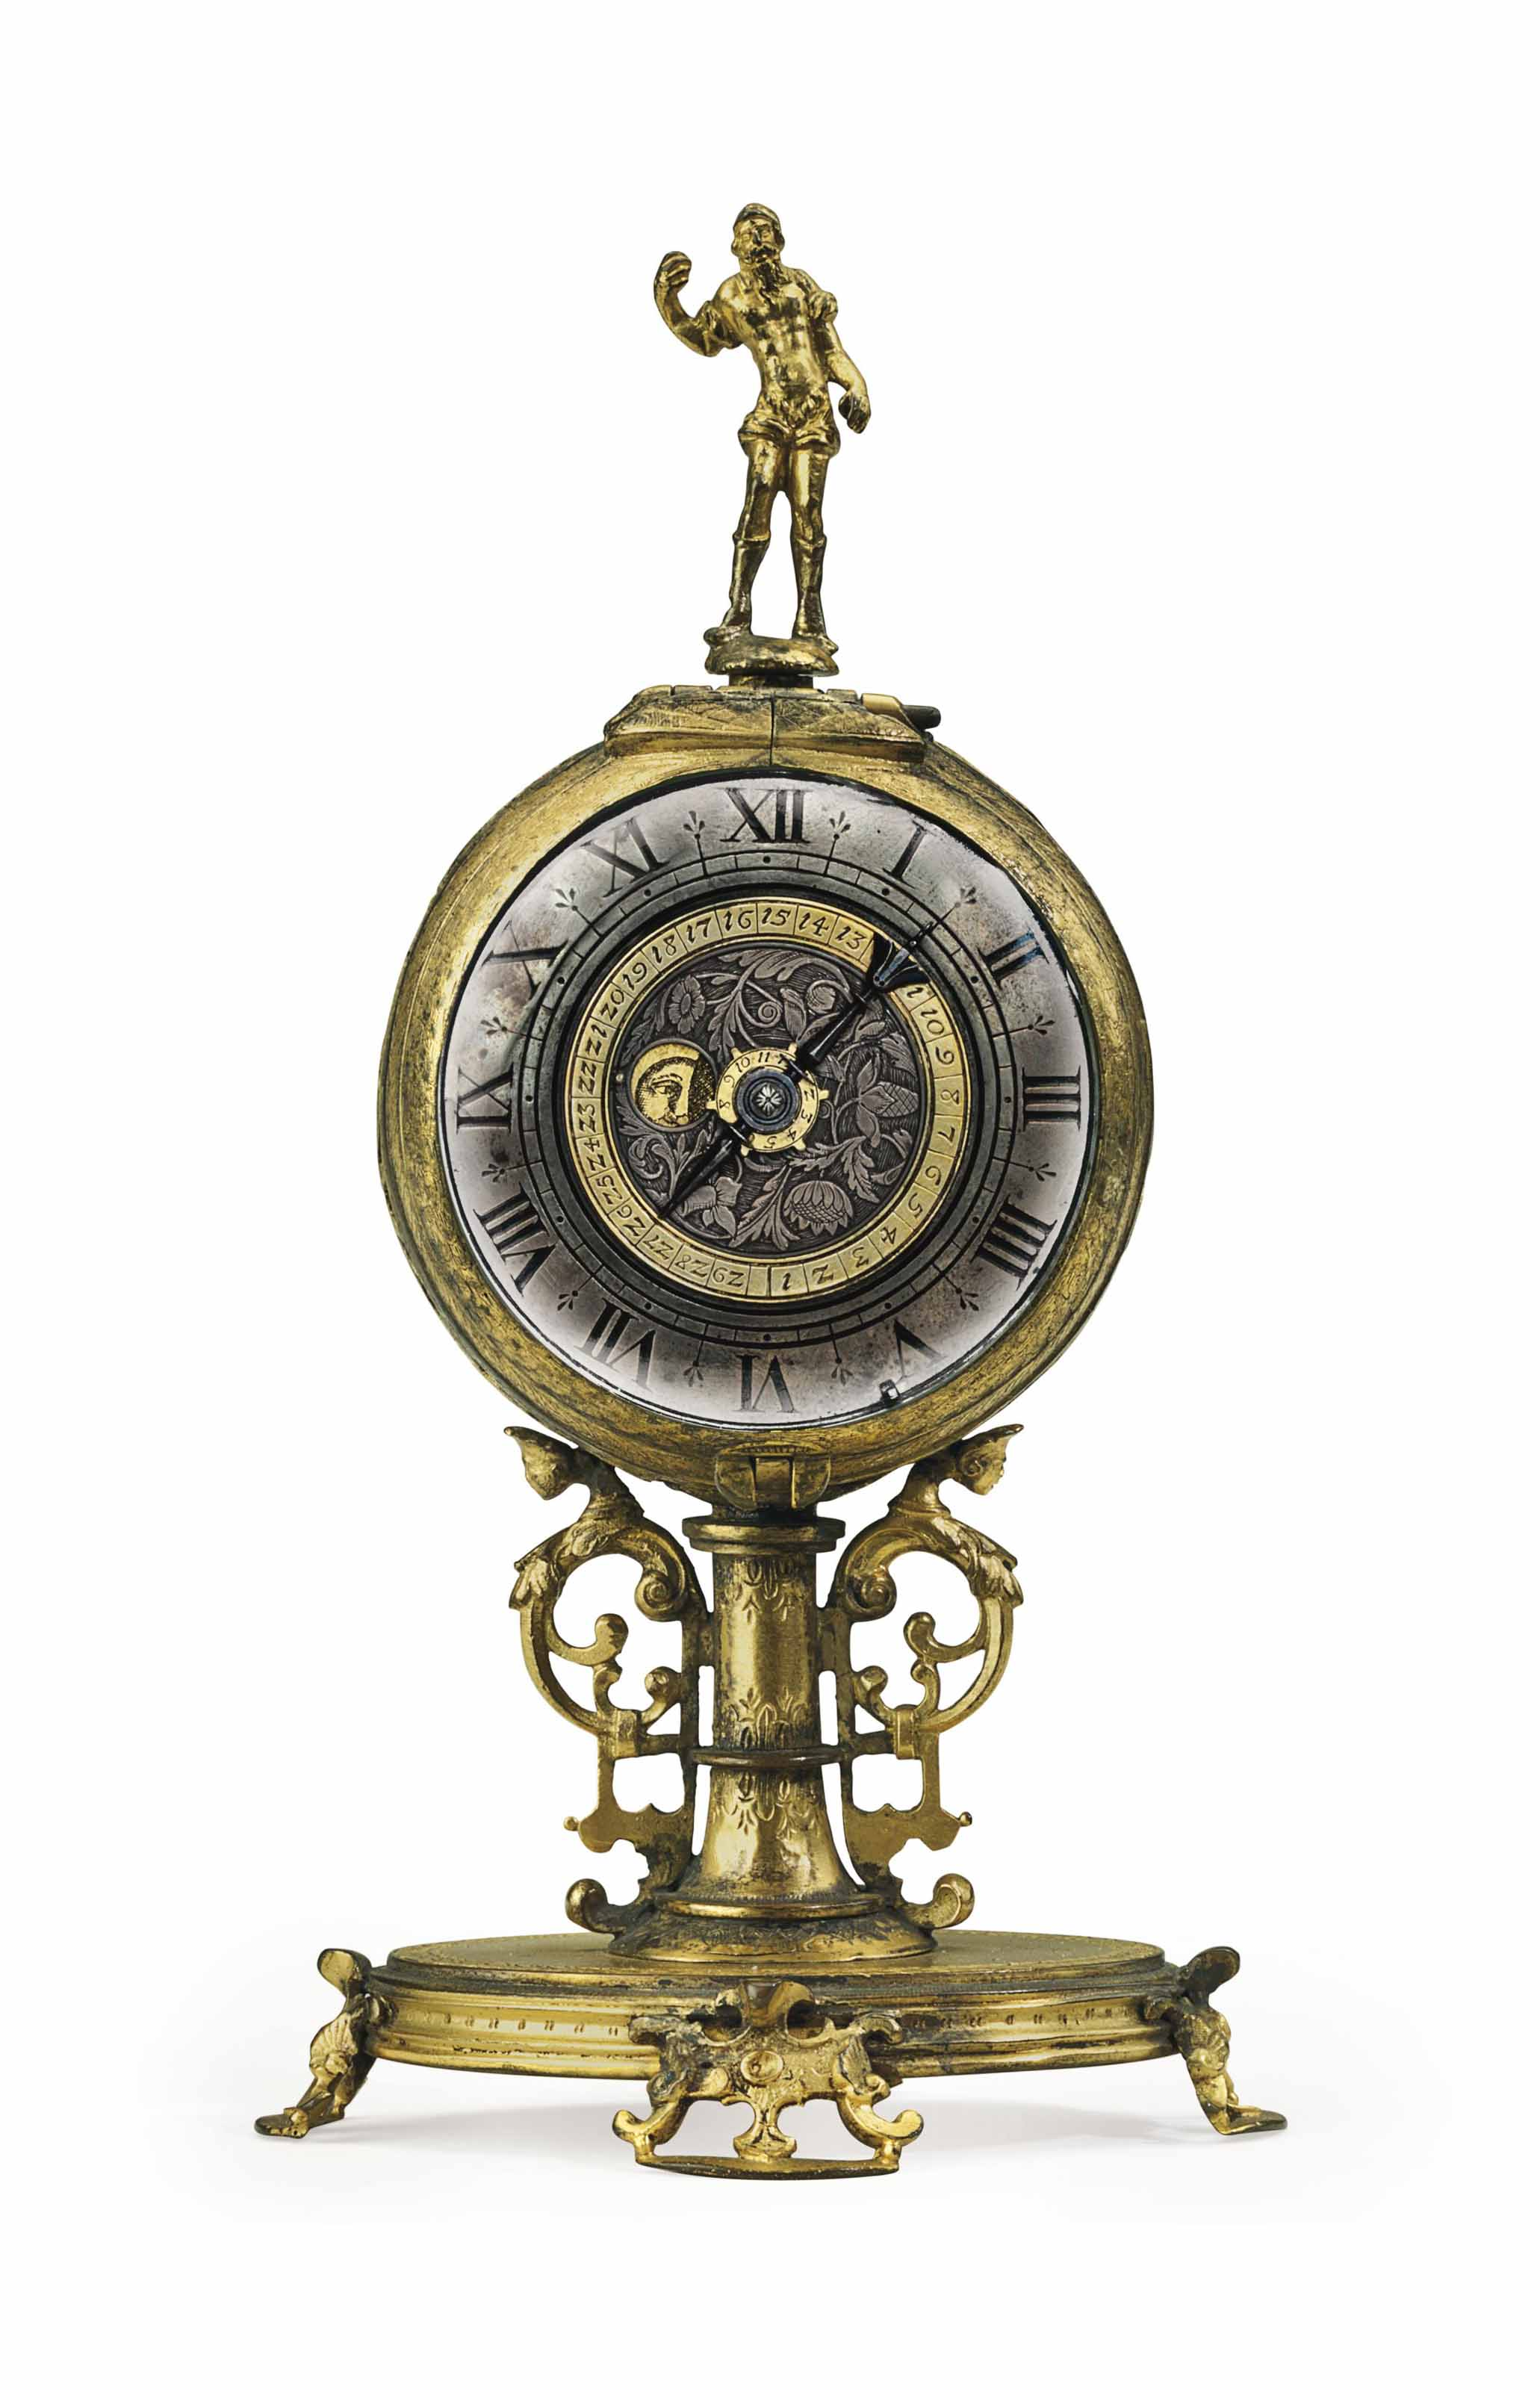 A GERMAN MINIATURE PIERCED AND ENGRAVED GILT-BRASS STRIKING TABLE CLOCK WITH ALARM AND MOONPHASE